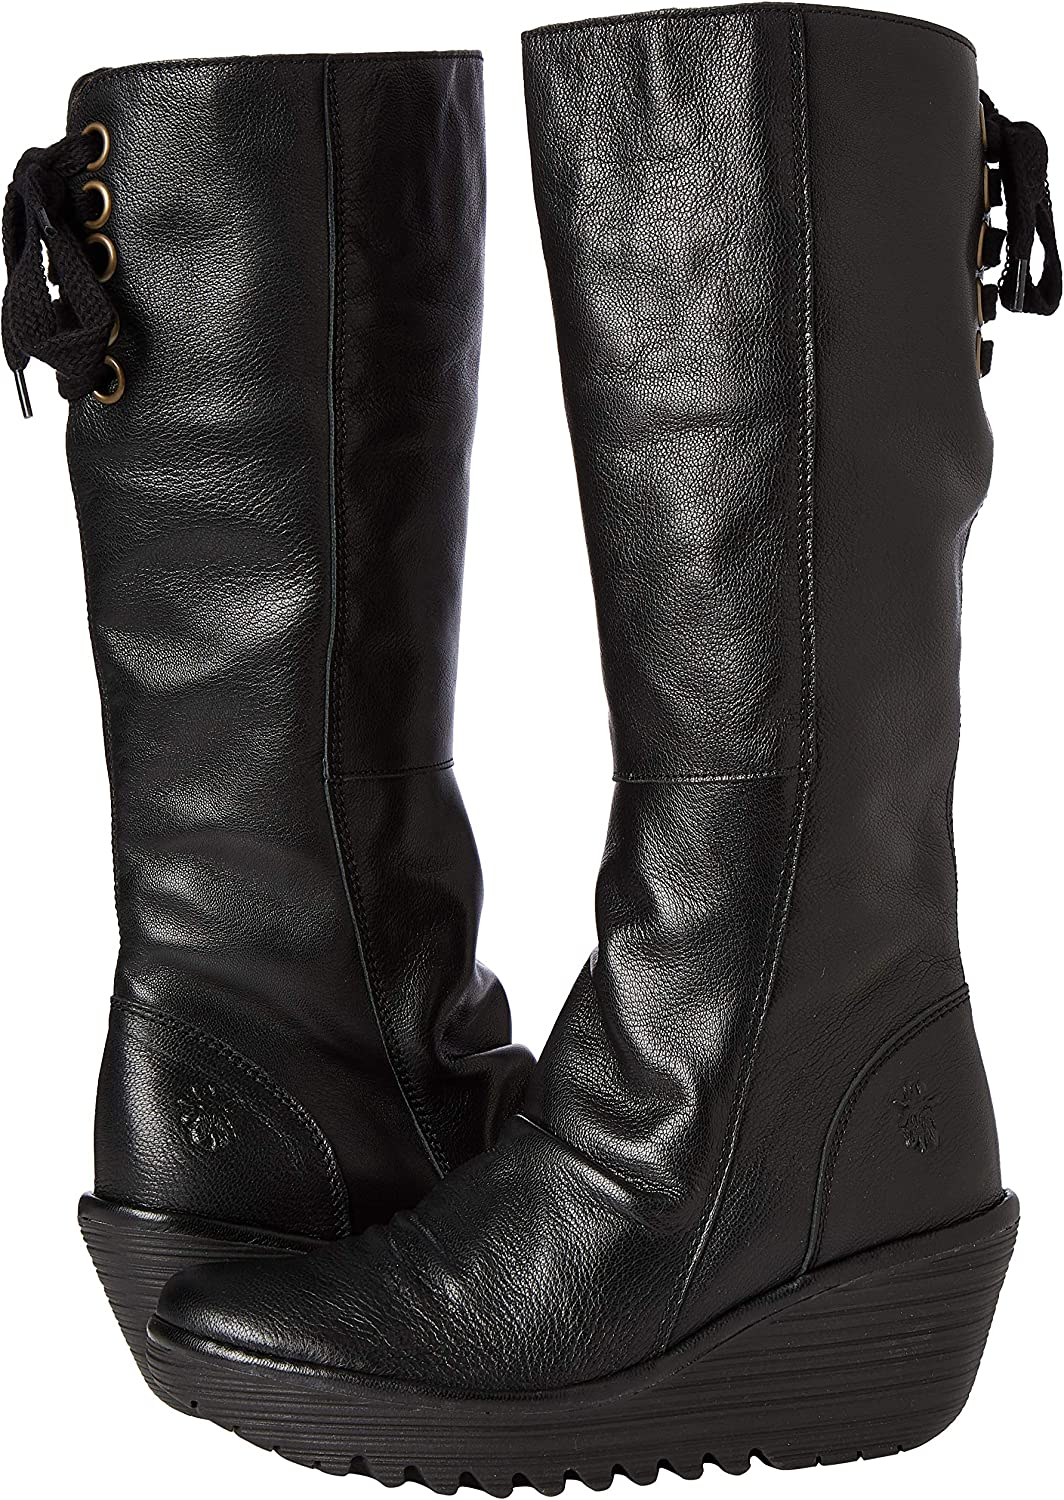 Womens Fly London Yust Extra Wide Mid Calf Winter Boot Low Wedge Cleated Black